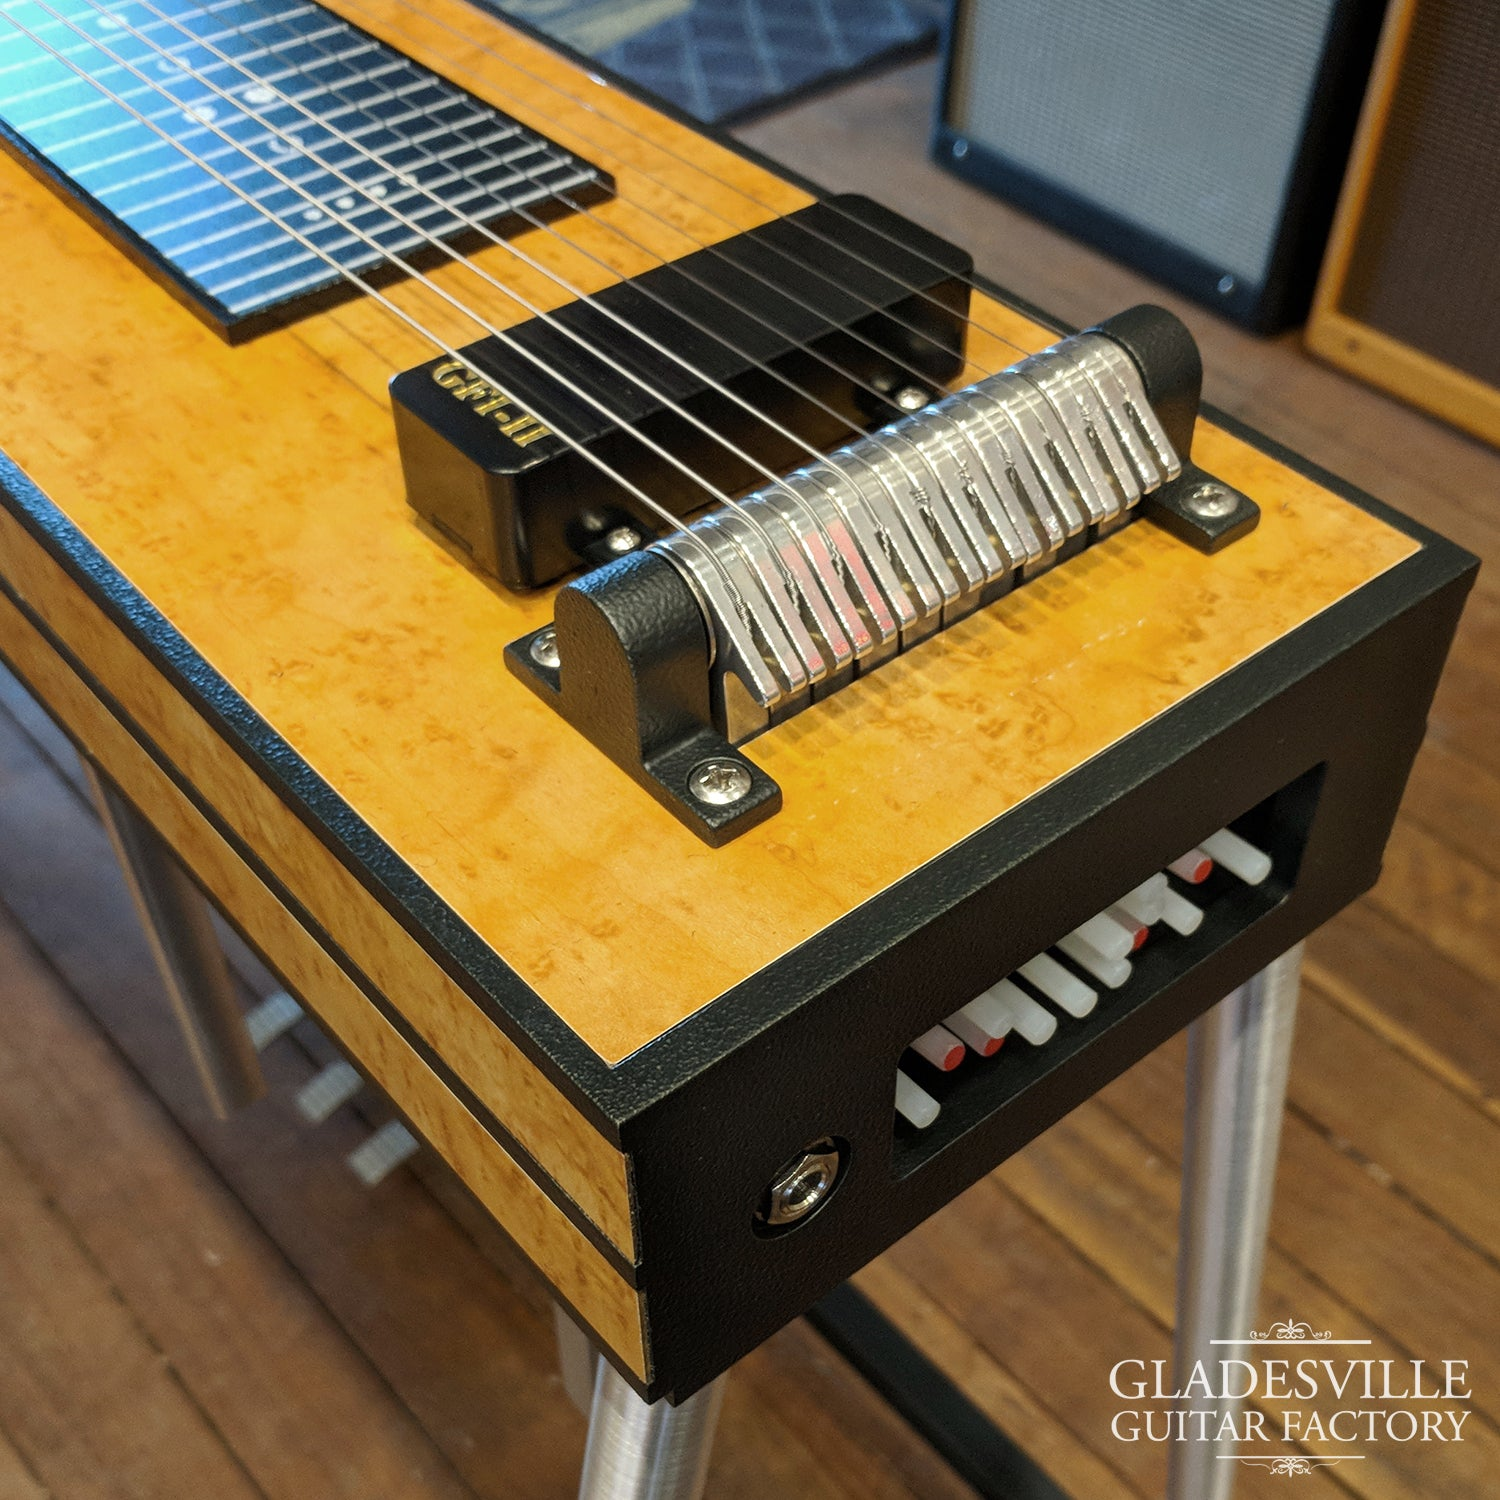 GFI S10 SM Maple 4-Knee Lever Pedal Steel Guitar